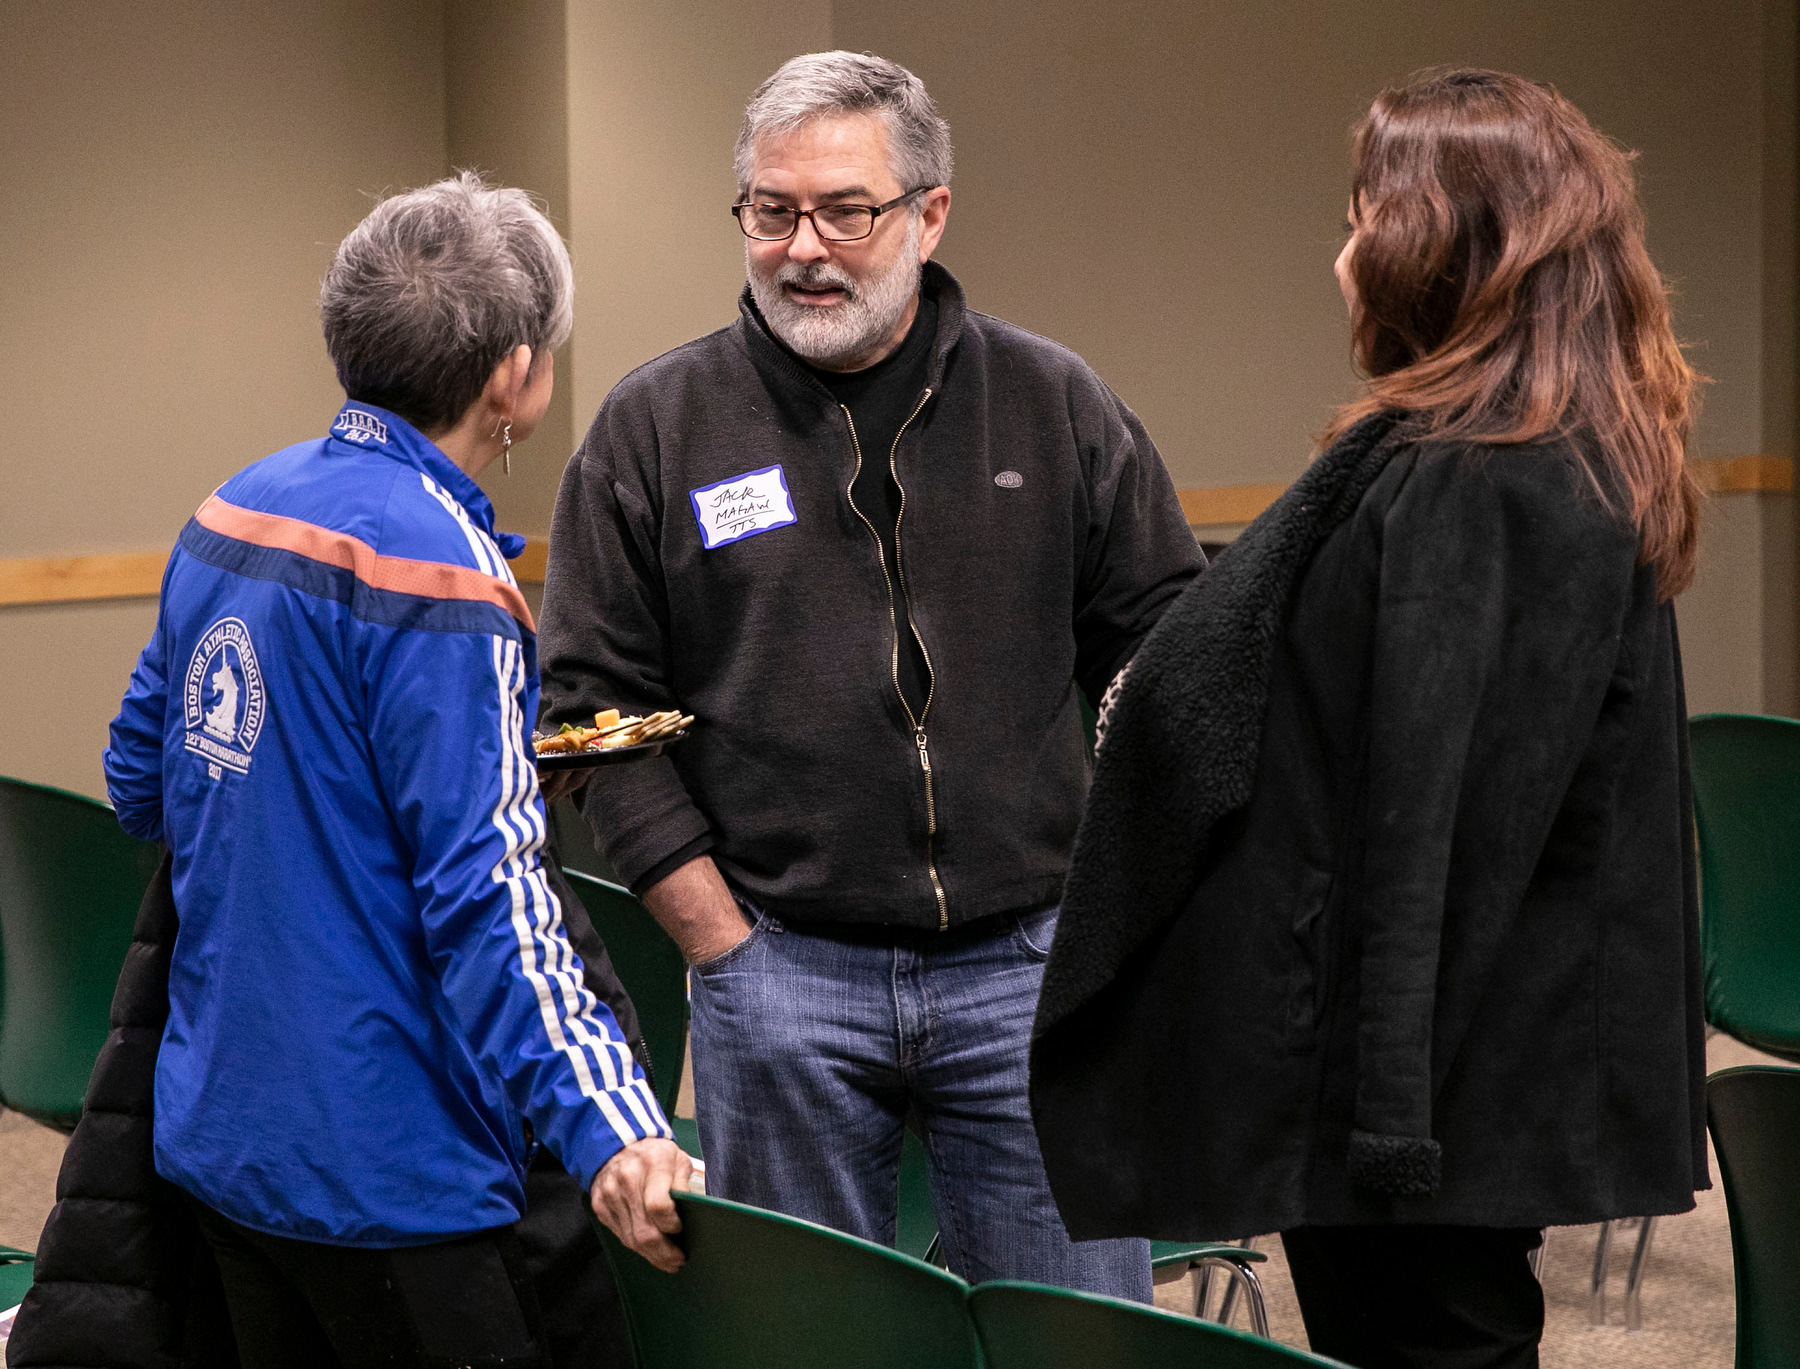 Adjunct Faculty Winter Reception